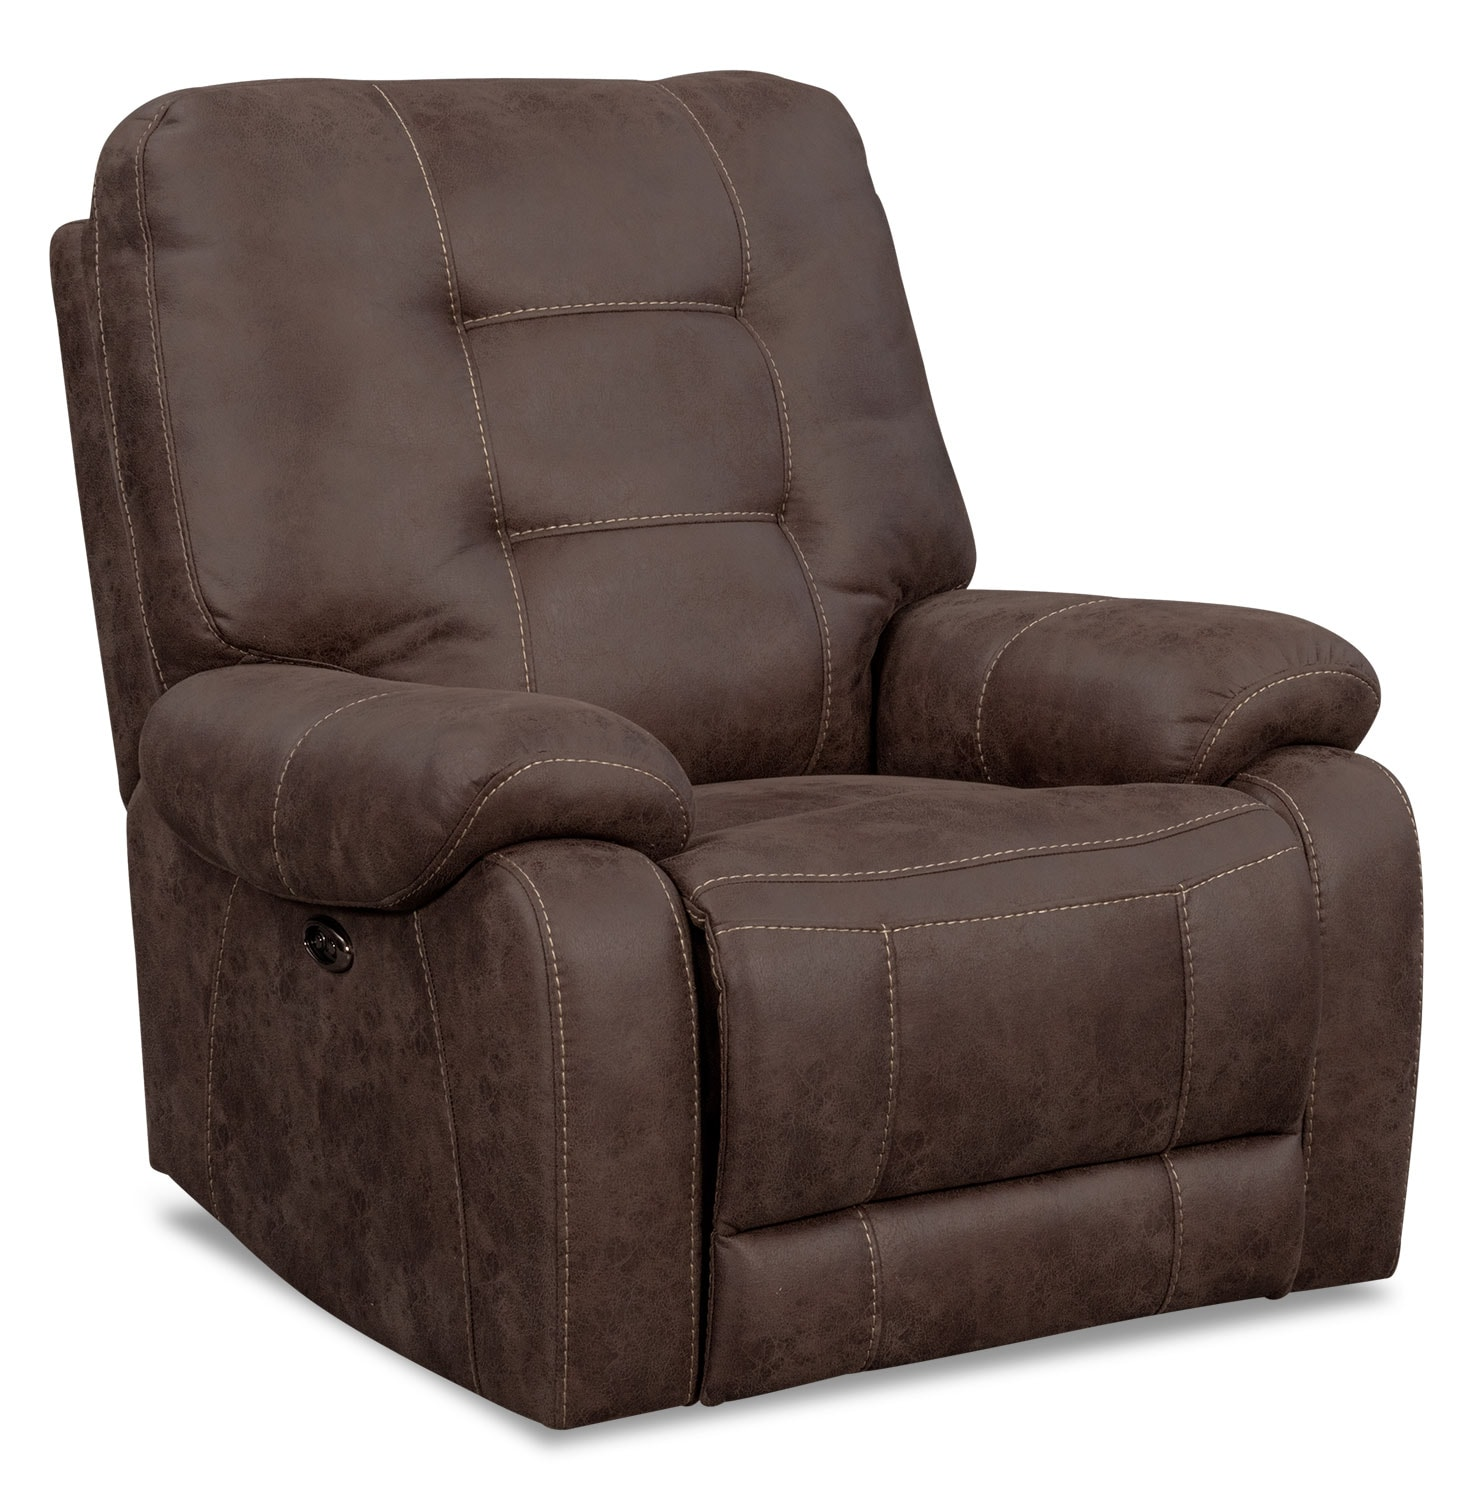 Denali Power Recliner - Mocha